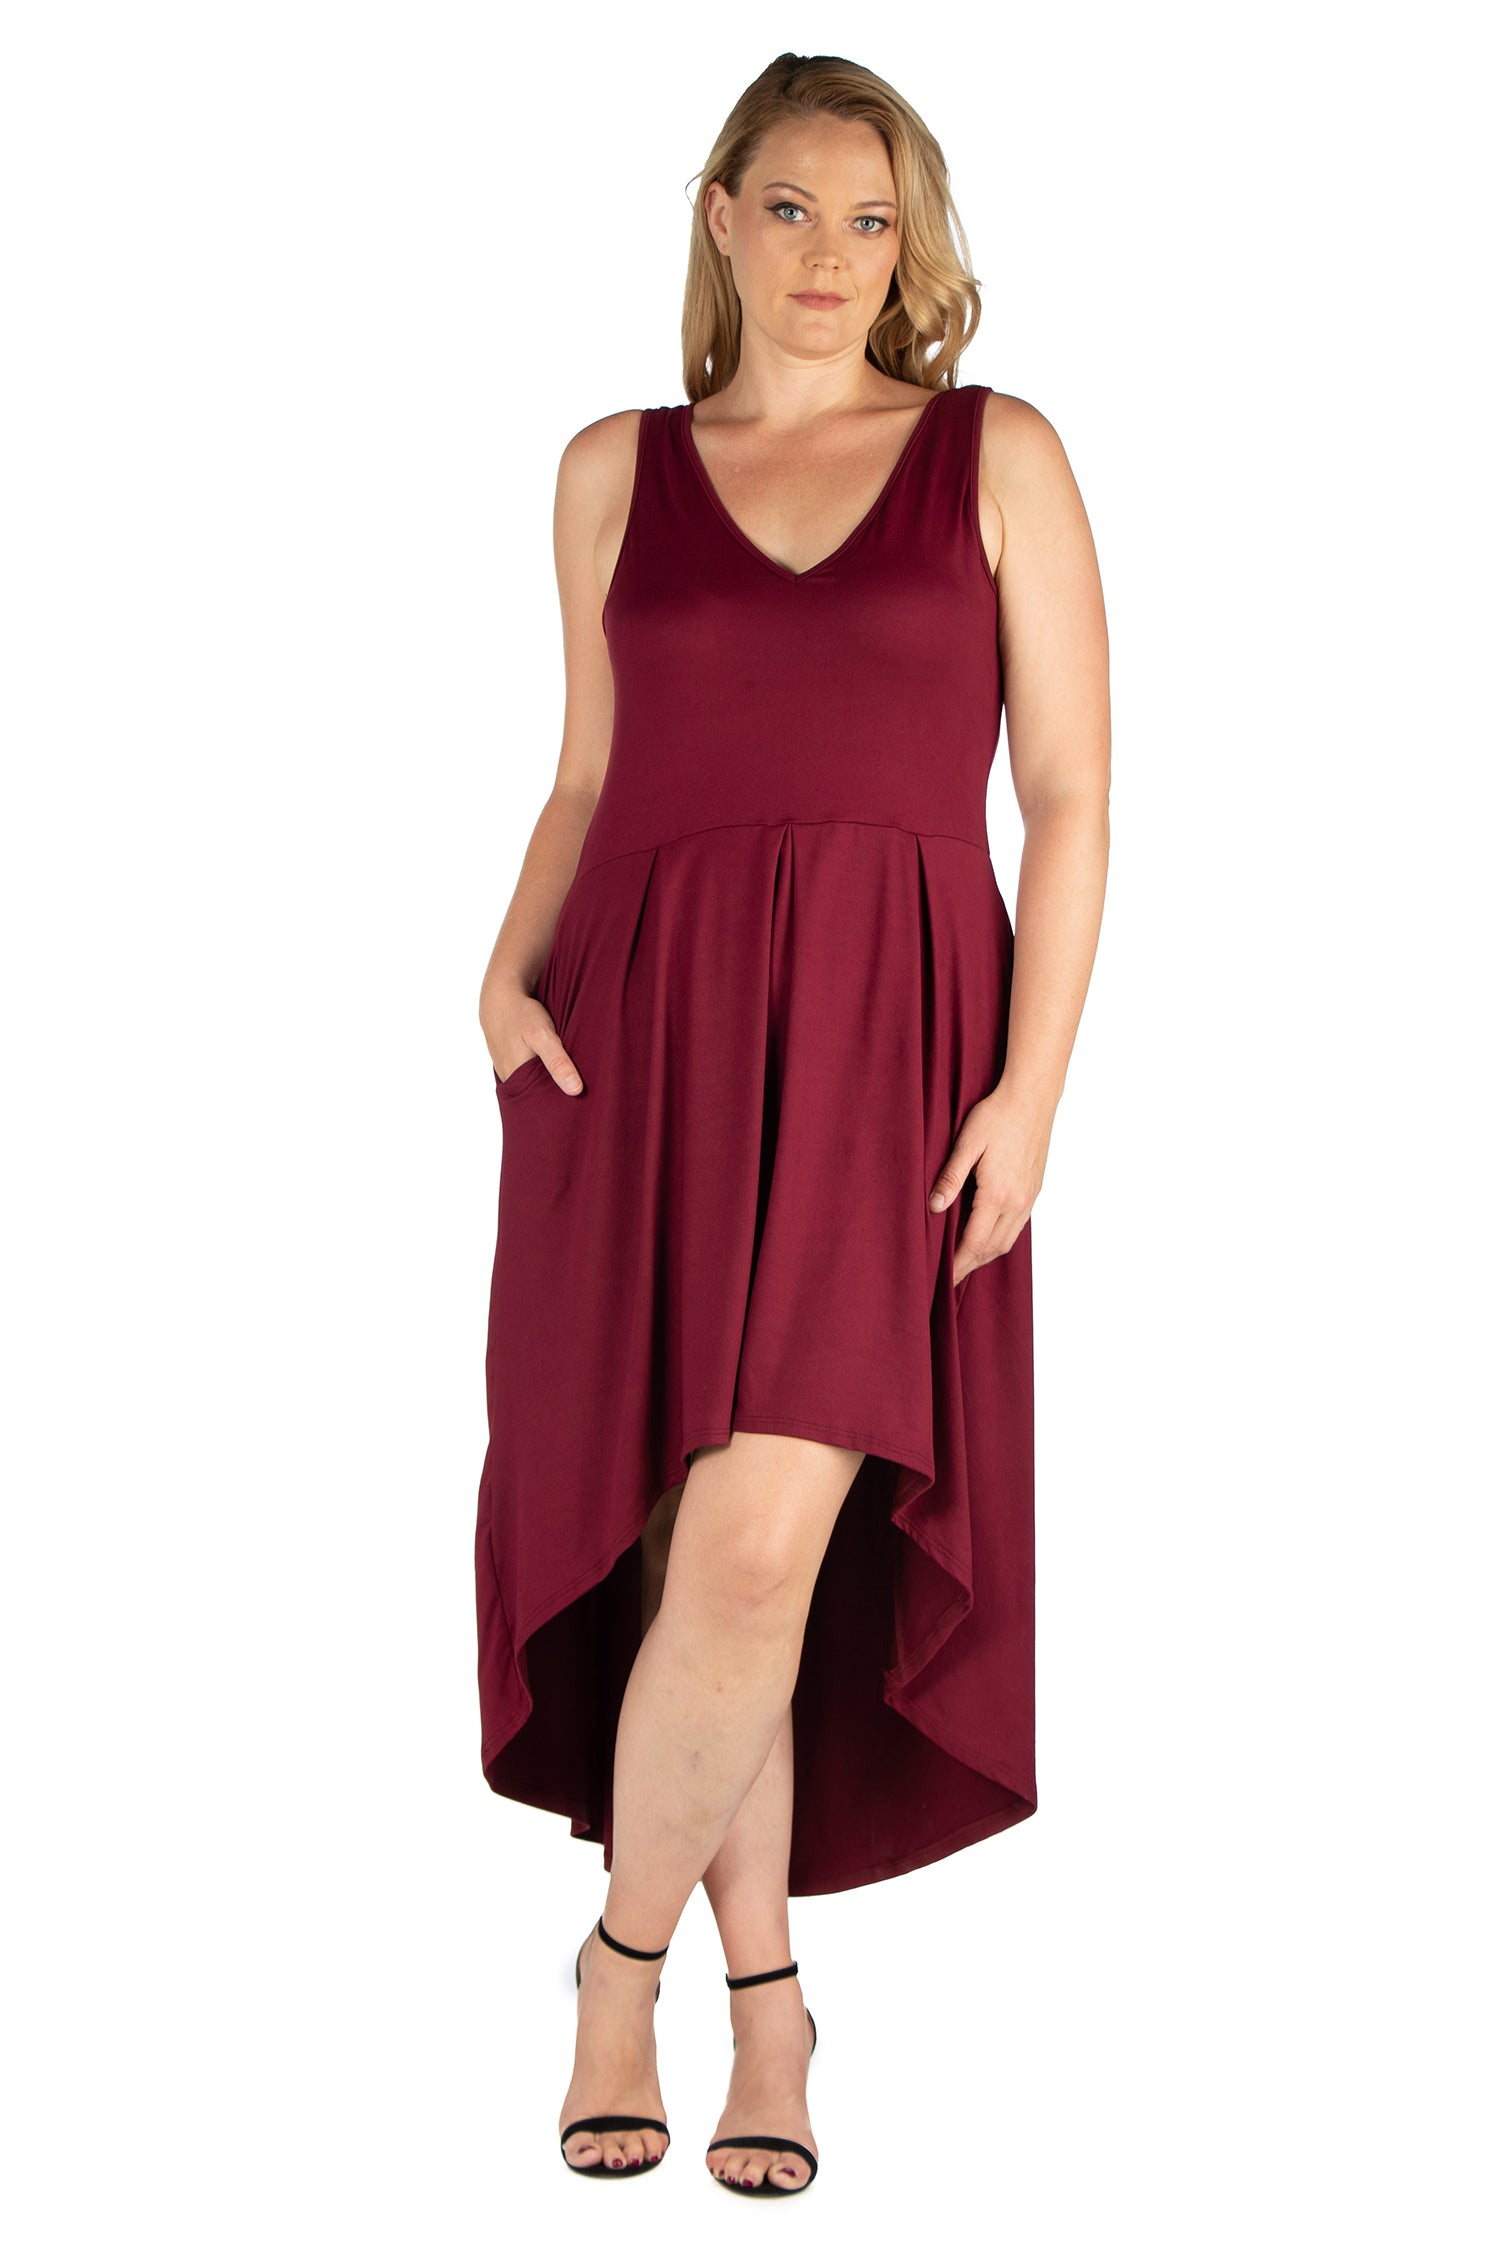 24seven Comfort Apparel High Low Plus Size Party Dress with Pockets-DRESSES-24Seven Comfort Apparel-BURGUNDY-1X-24/7 Comfort Apparel